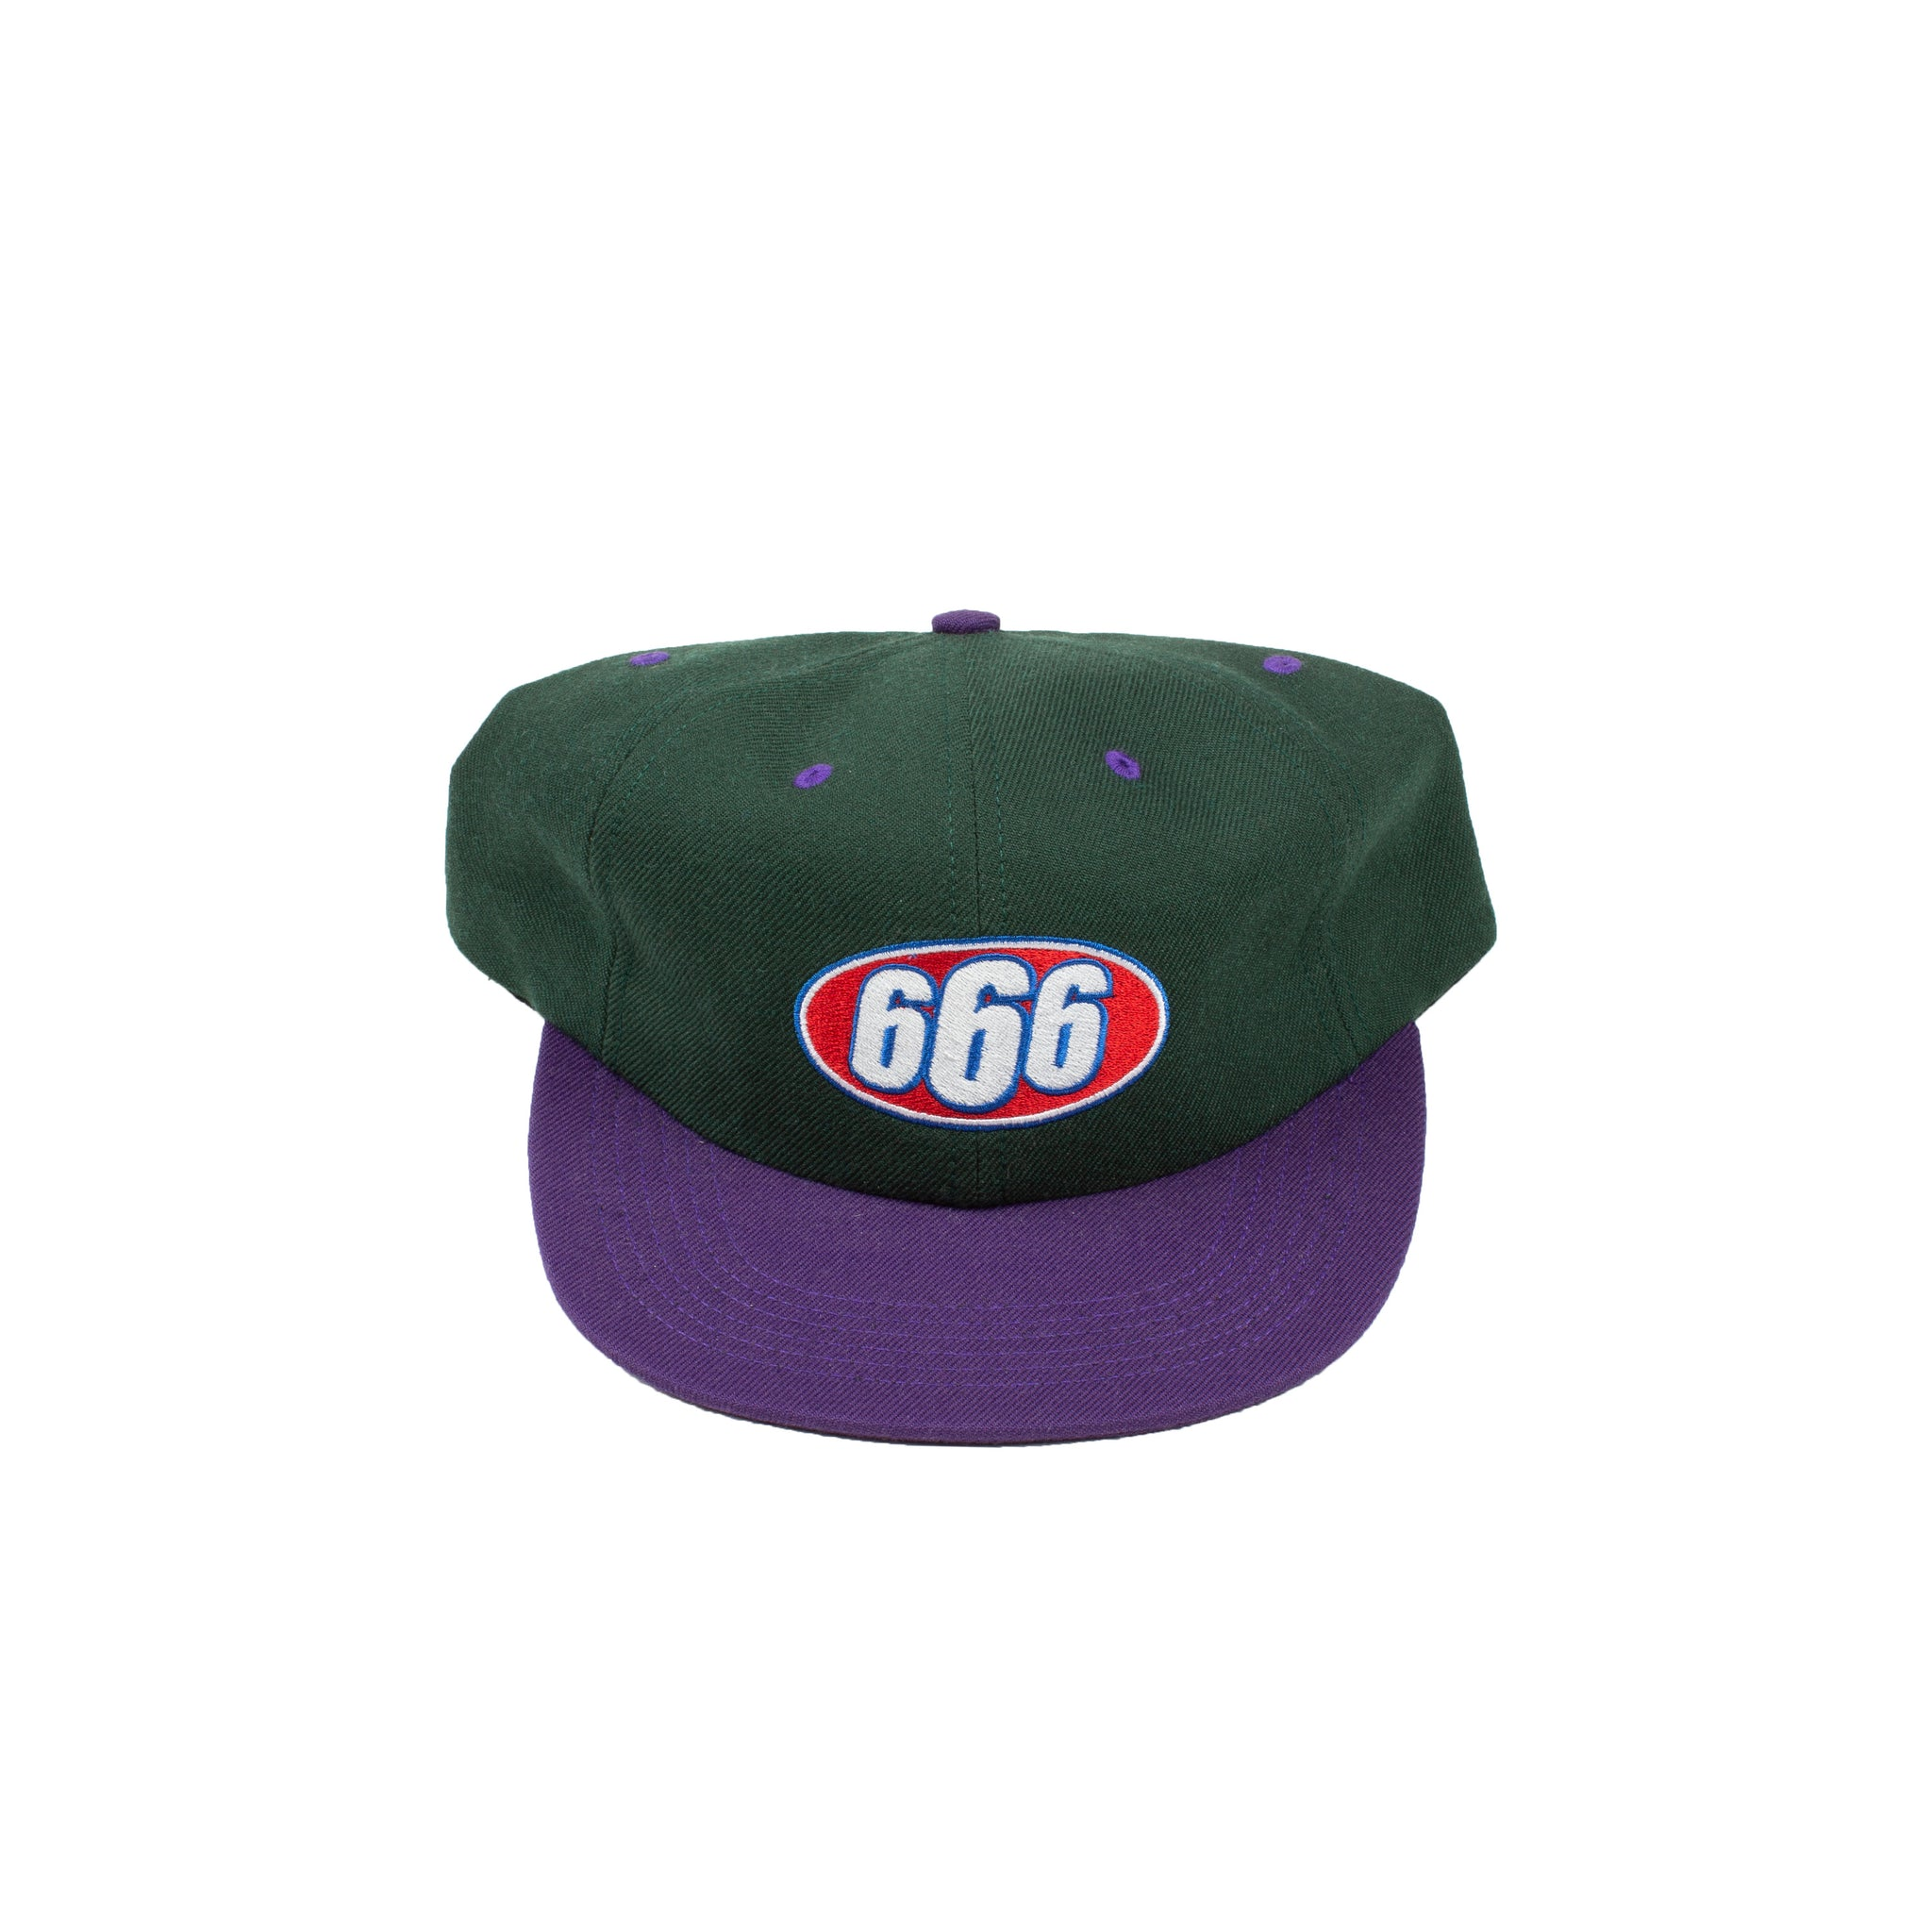 Supreme Green 666 Hat